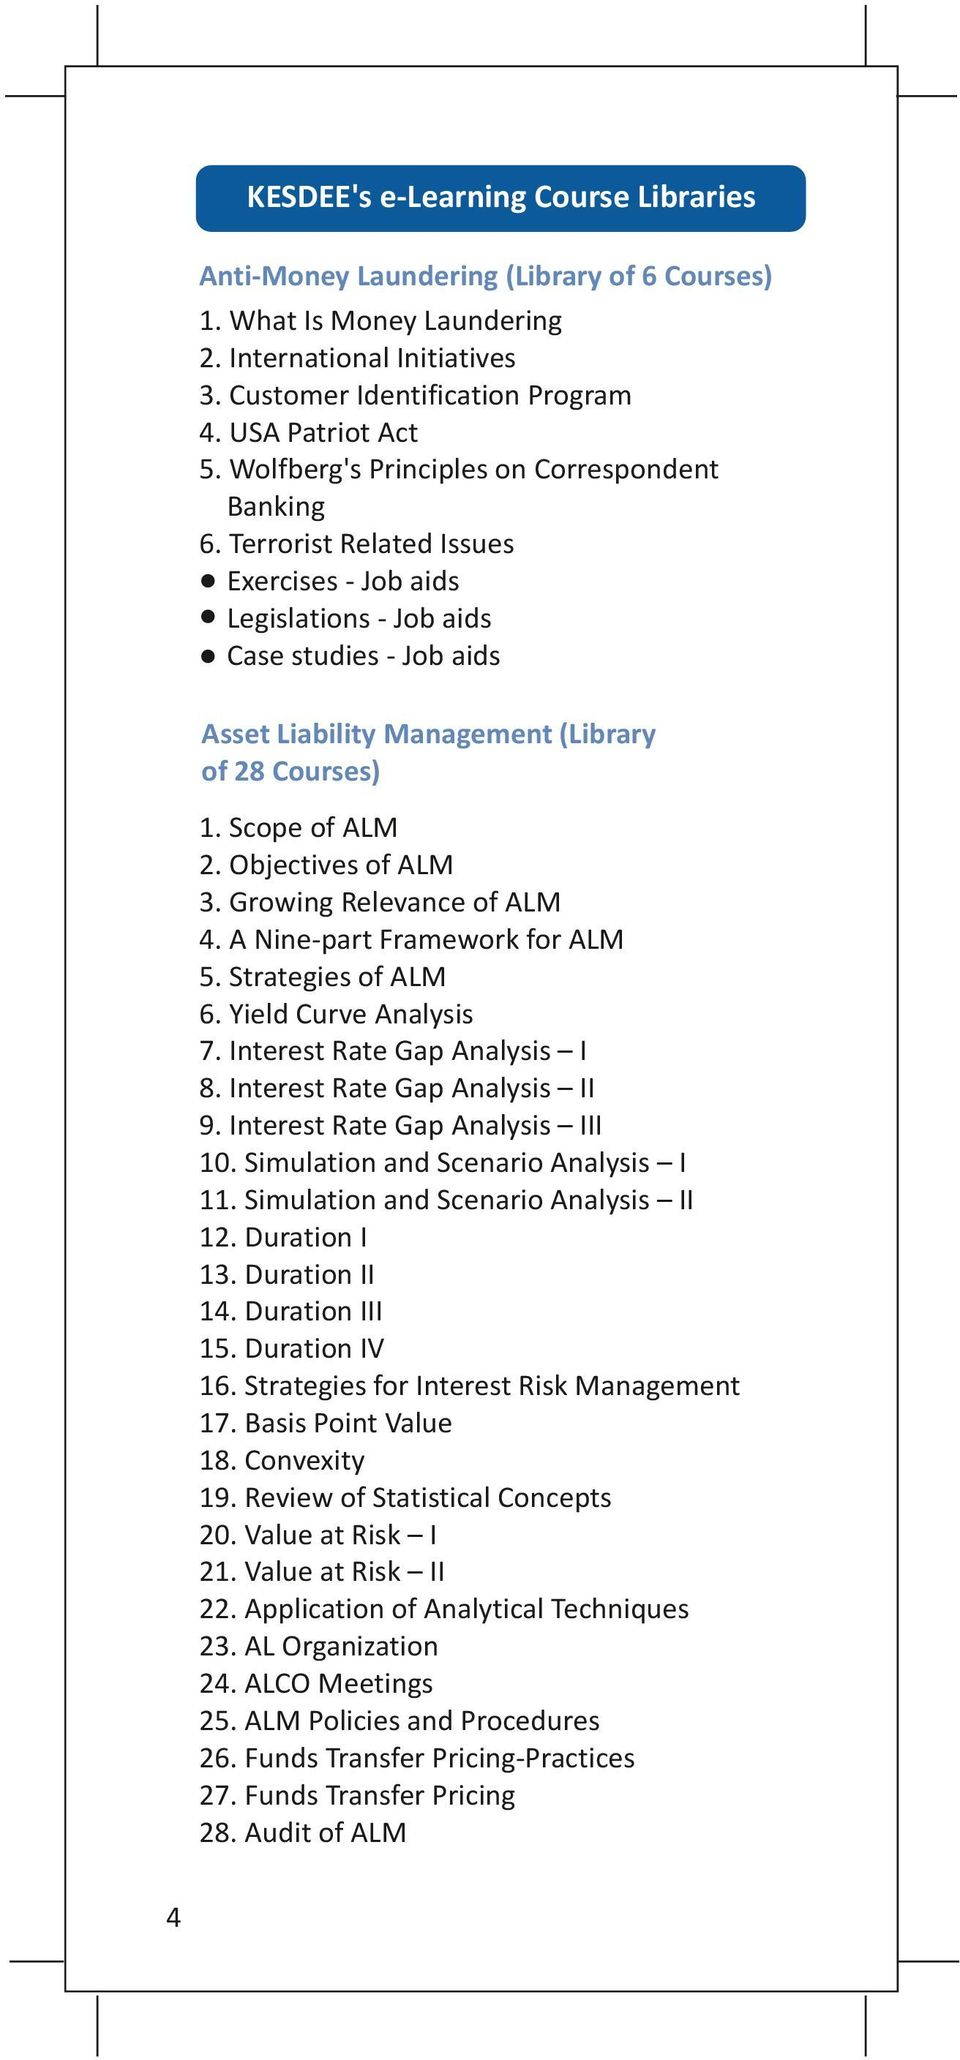 Scope of ALM 2. Objectives of ALM 3. Growing Relevance of ALM 4. A Nine-part Framework for ALM 5. Strategies of ALM 6. Yield Curve Analysis 7. Interest Rate Gap Analysis I 8.